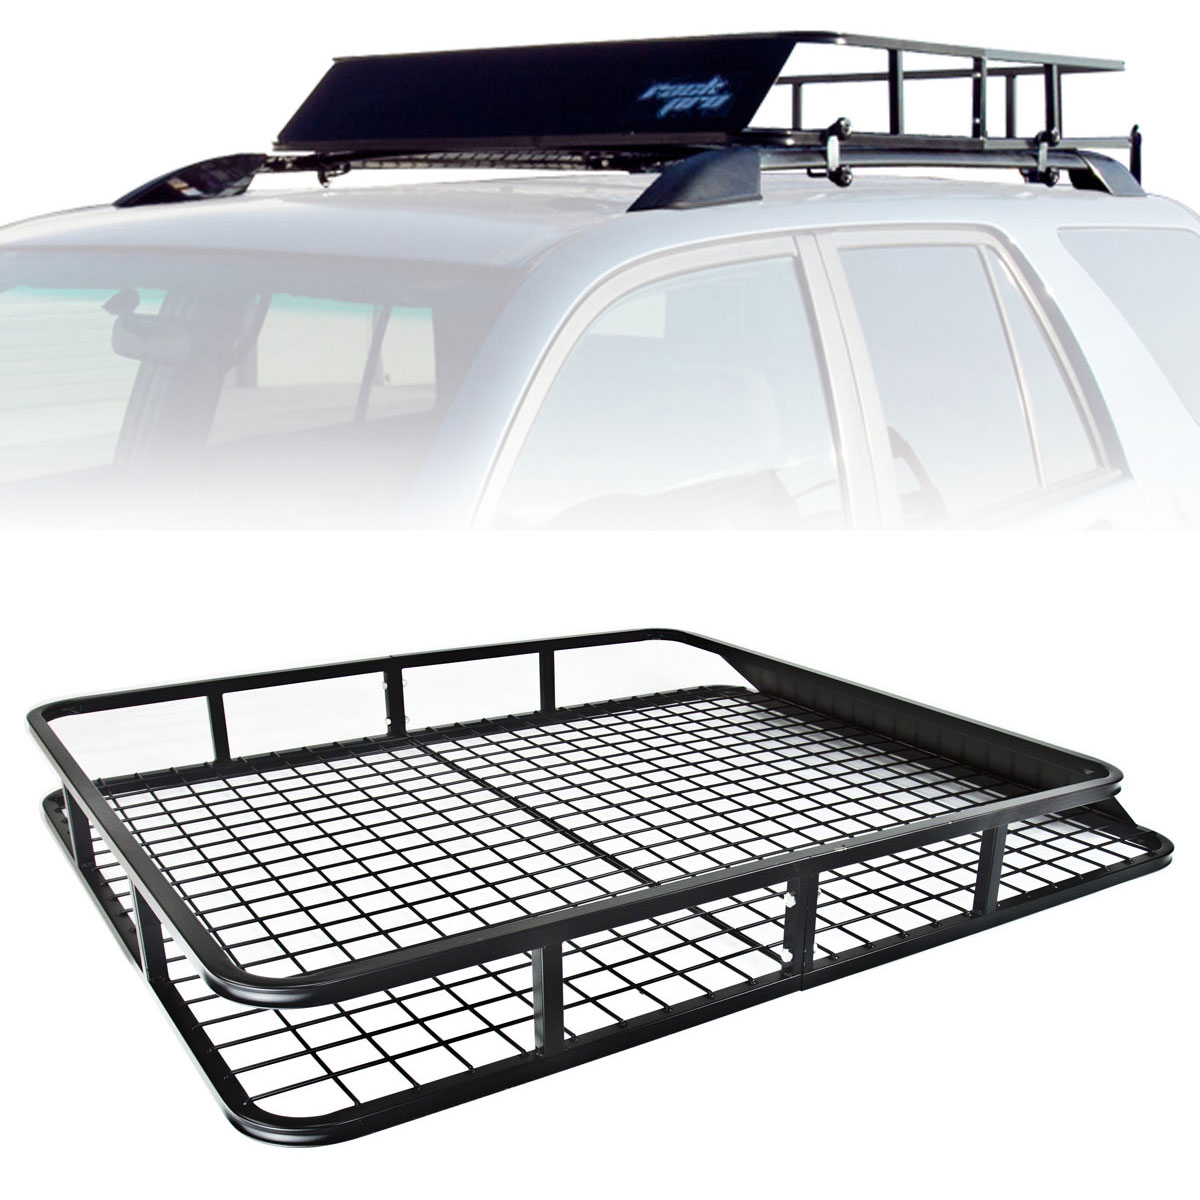 top basket universal roof rack cargo car luggage carrier traveling suv